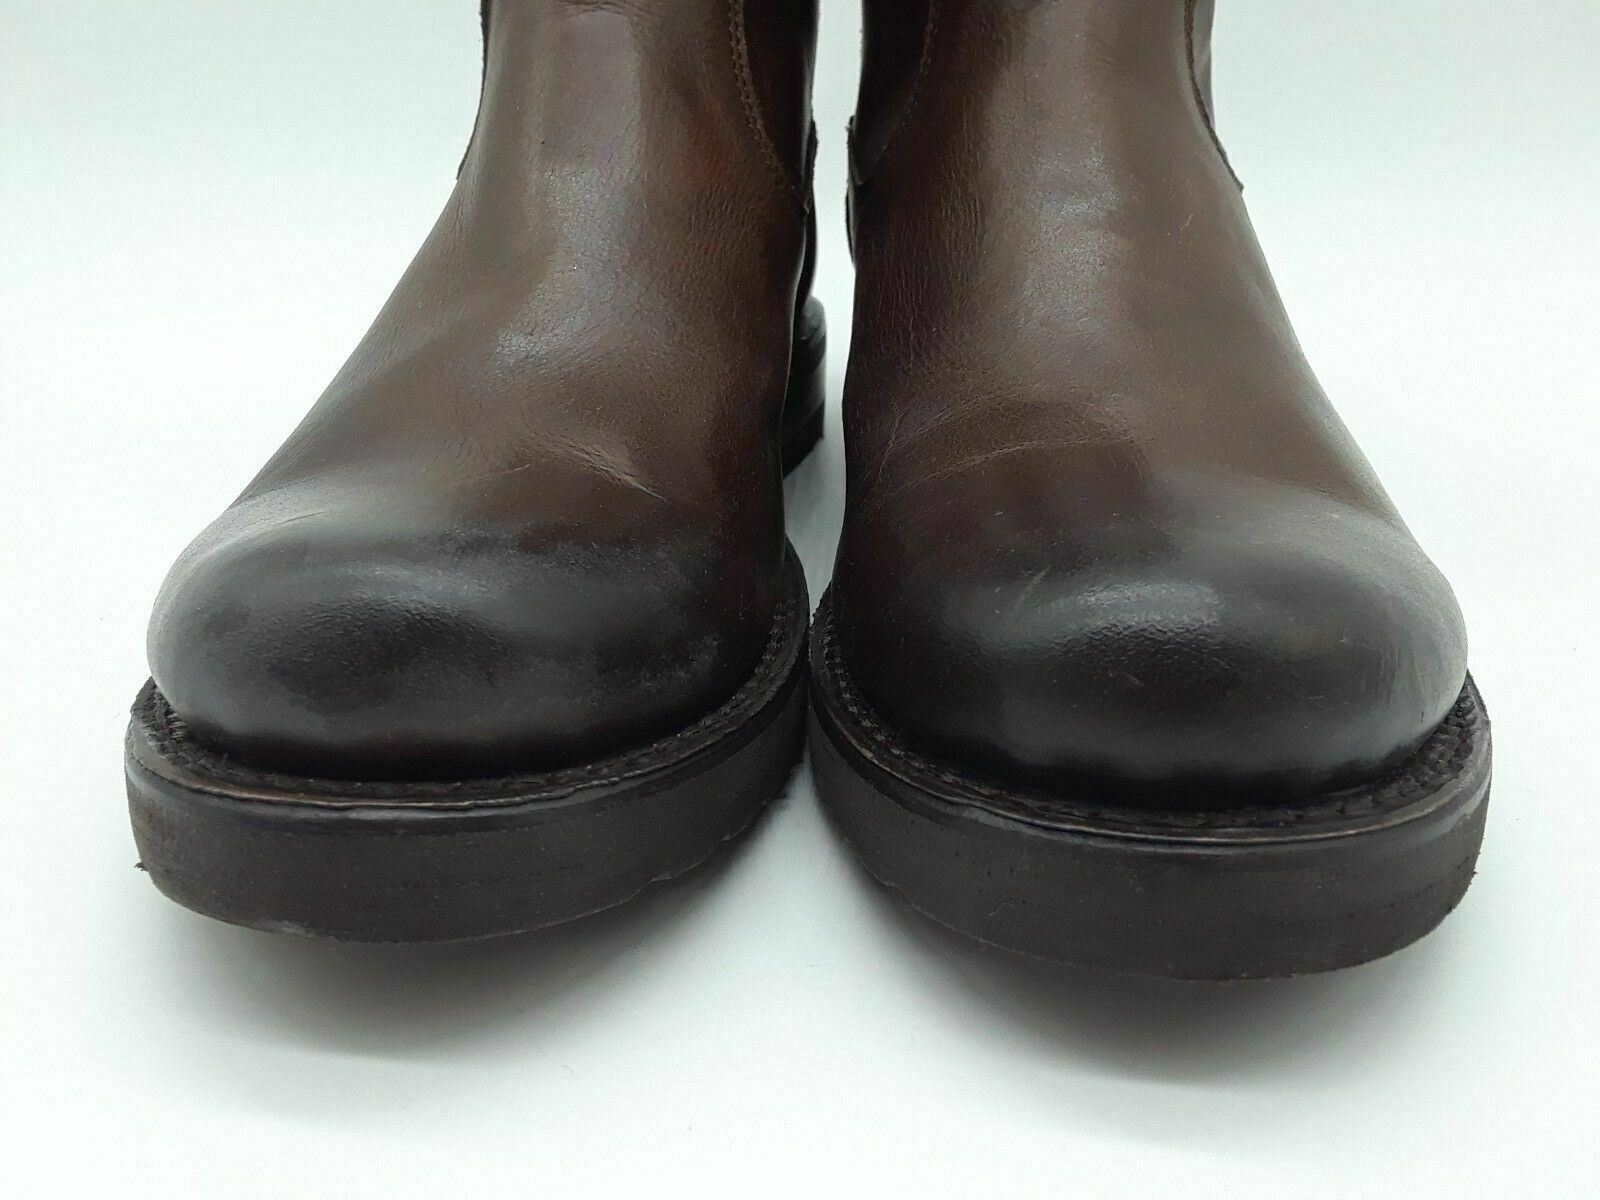 Frye Veronica Women Shoes Chocolate Leather Ankle Booties Sz 6 B